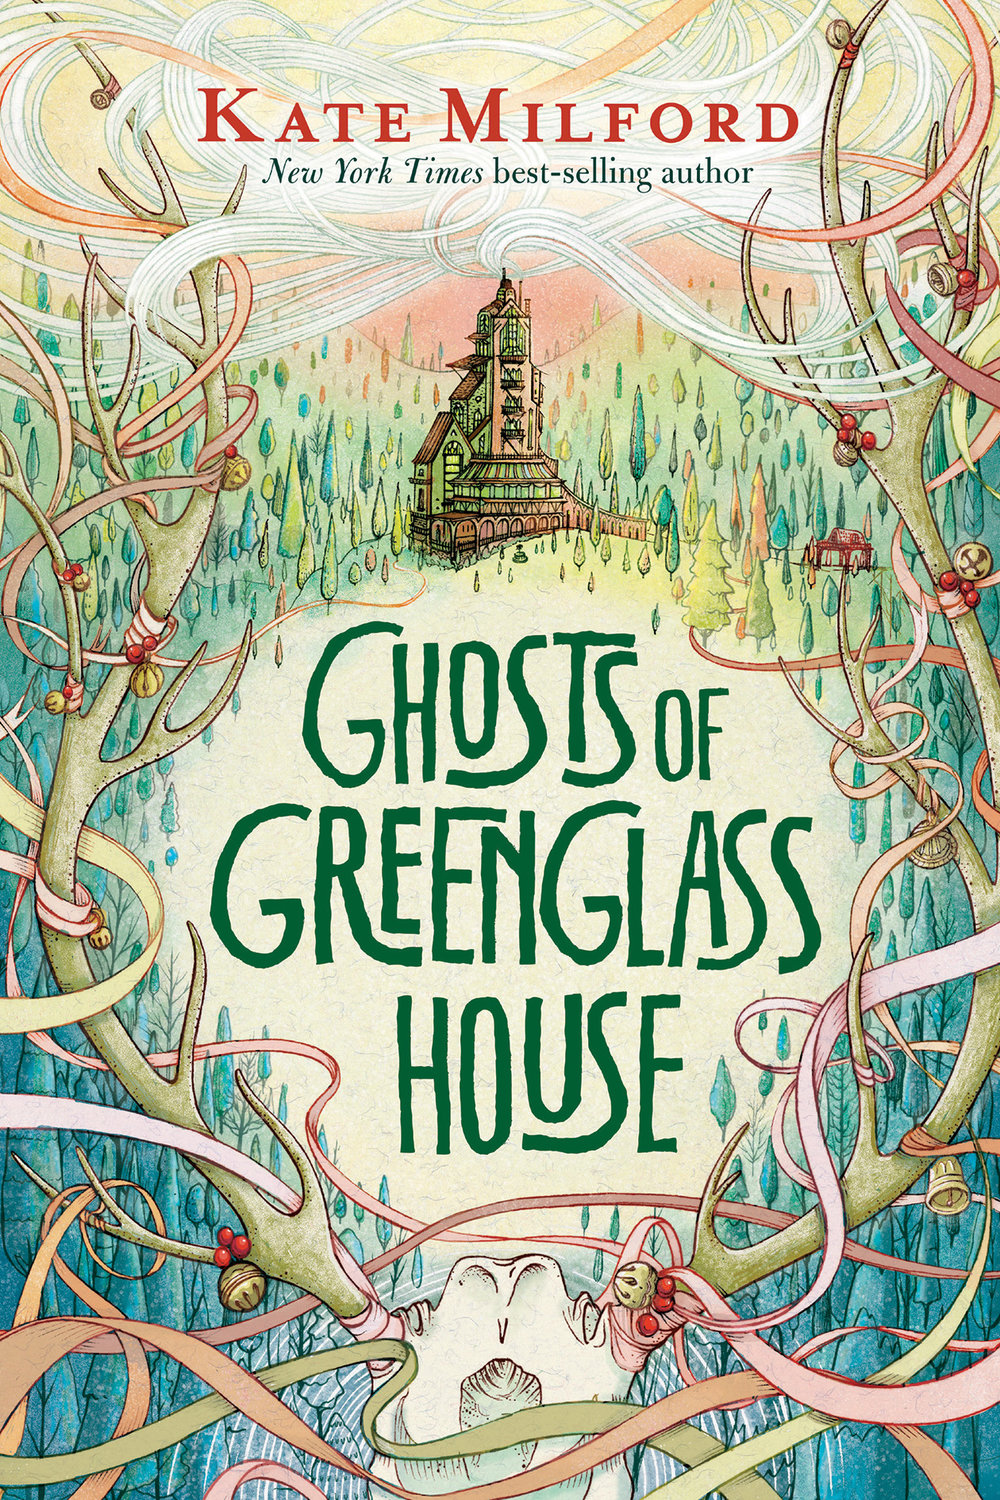 Ghosts book cover art.jpg